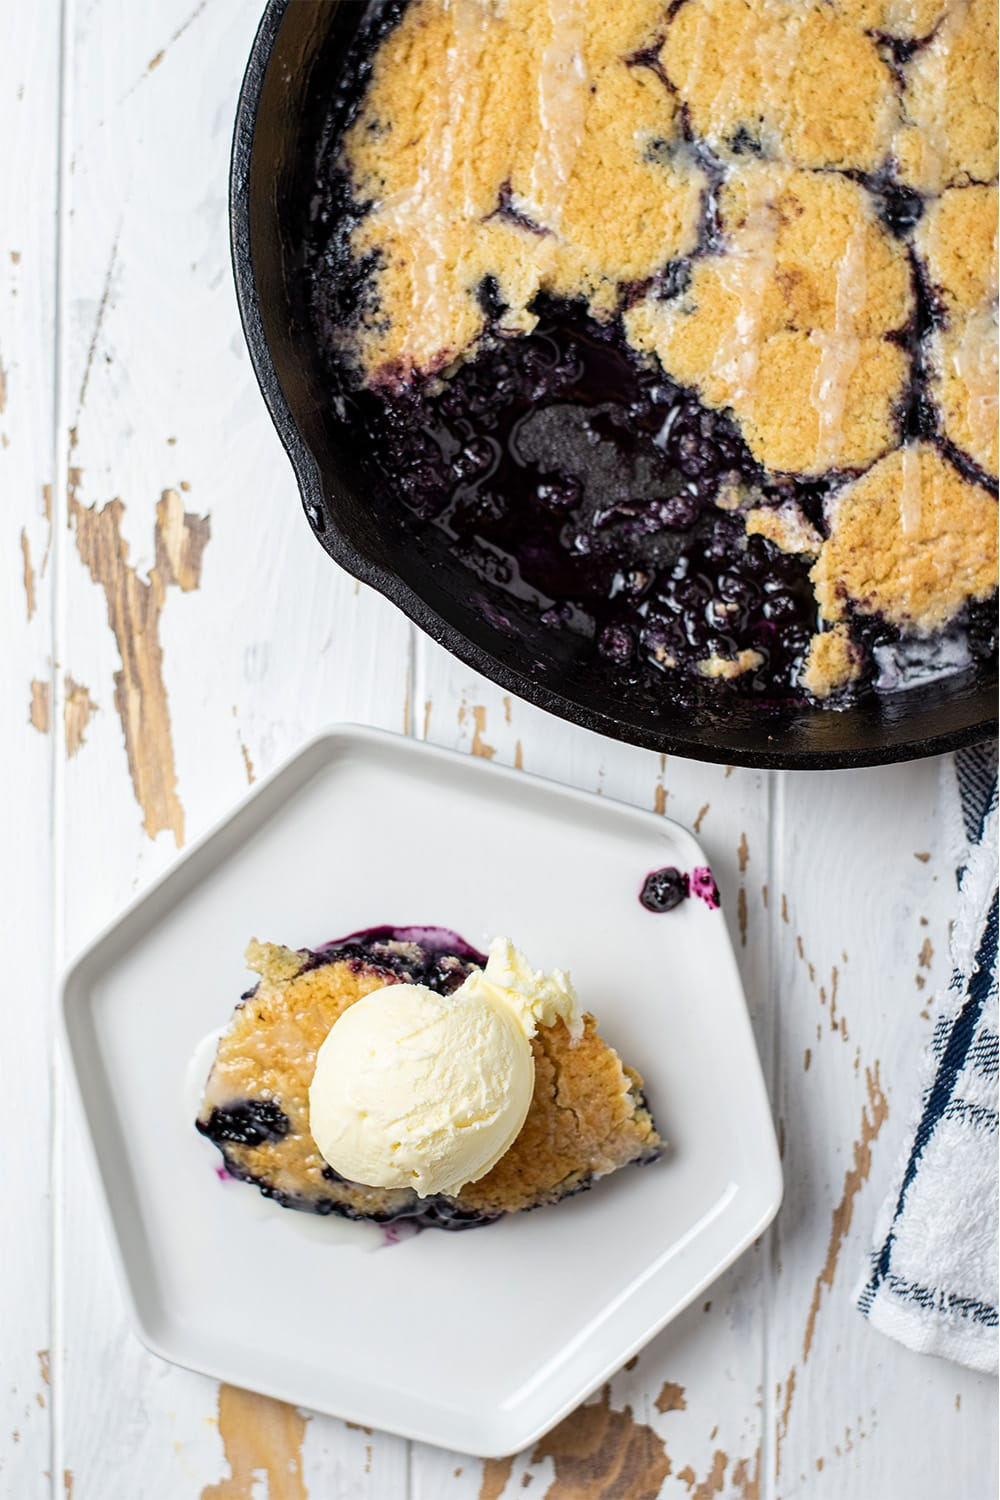 Skillet Blueberry Cobbler Recipe With Almond Frosting